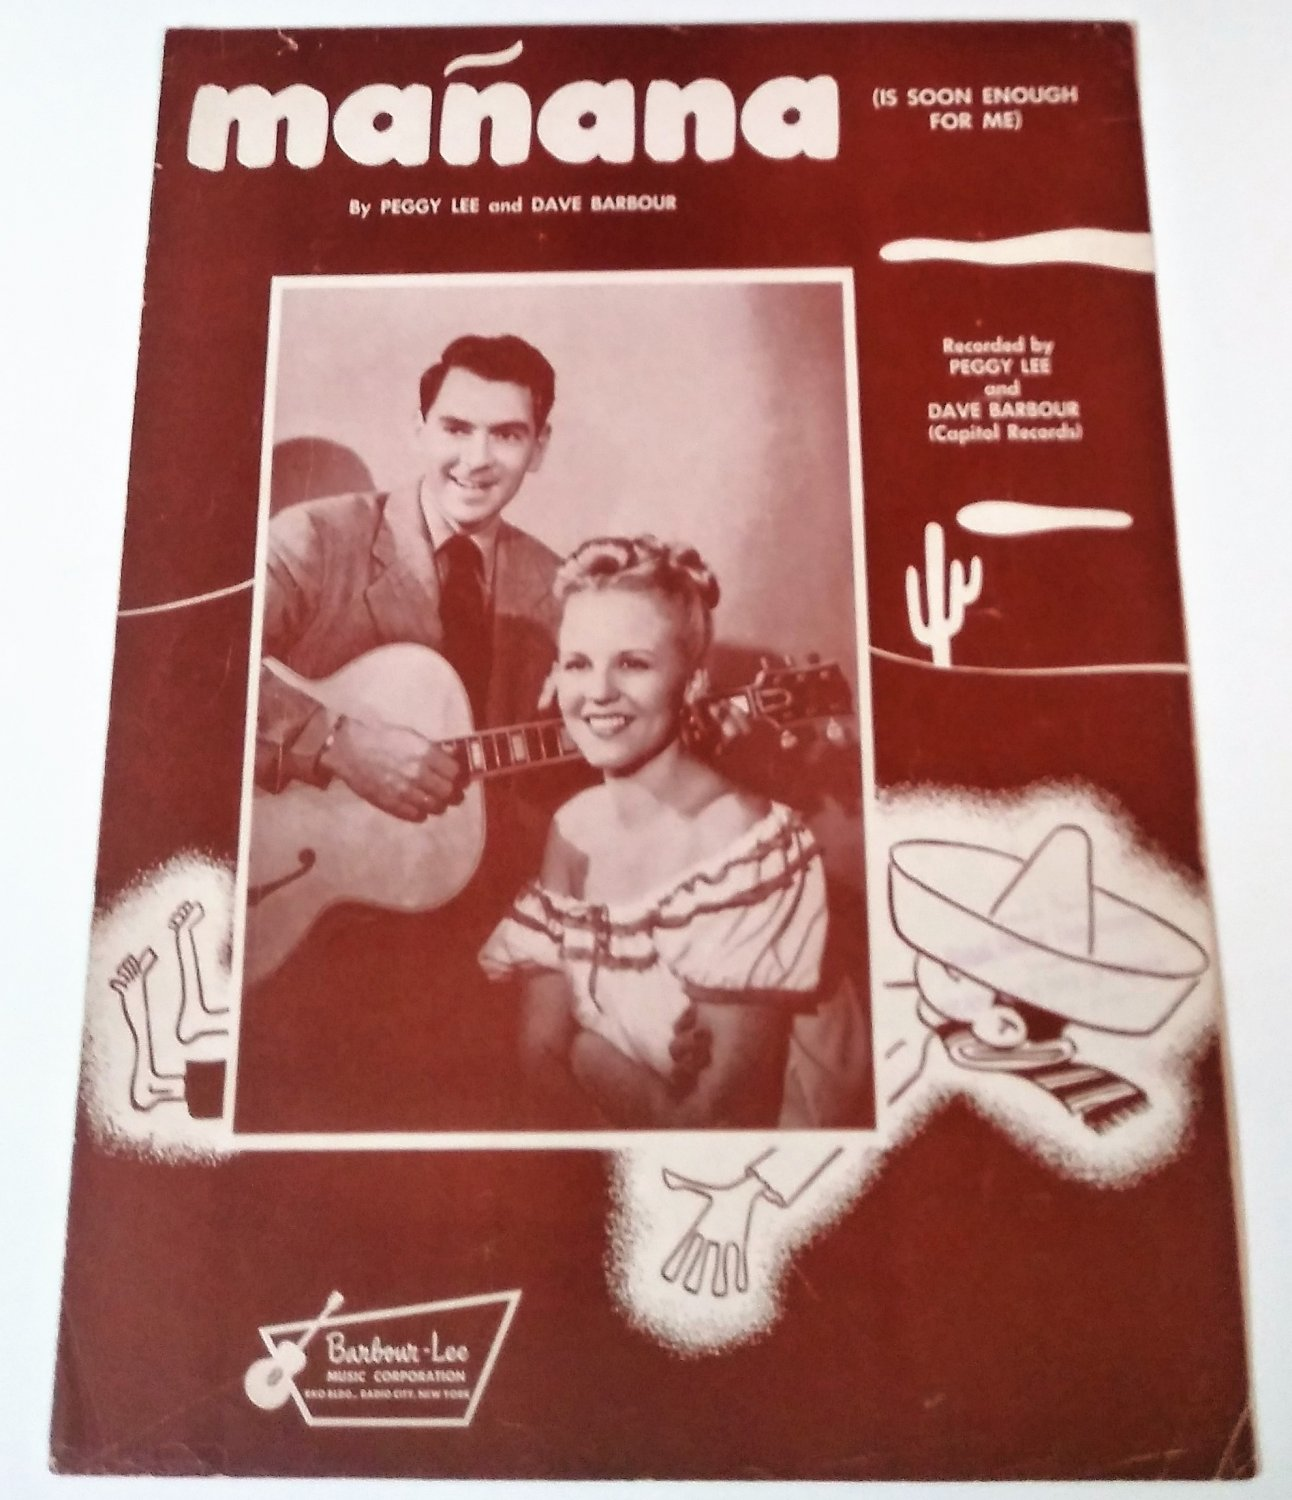 MA�ANA (IS SOON ENOUGH FOR ME) Piano/Vocal Sheet Music PEGGY LEE & DAVE BARBOUR